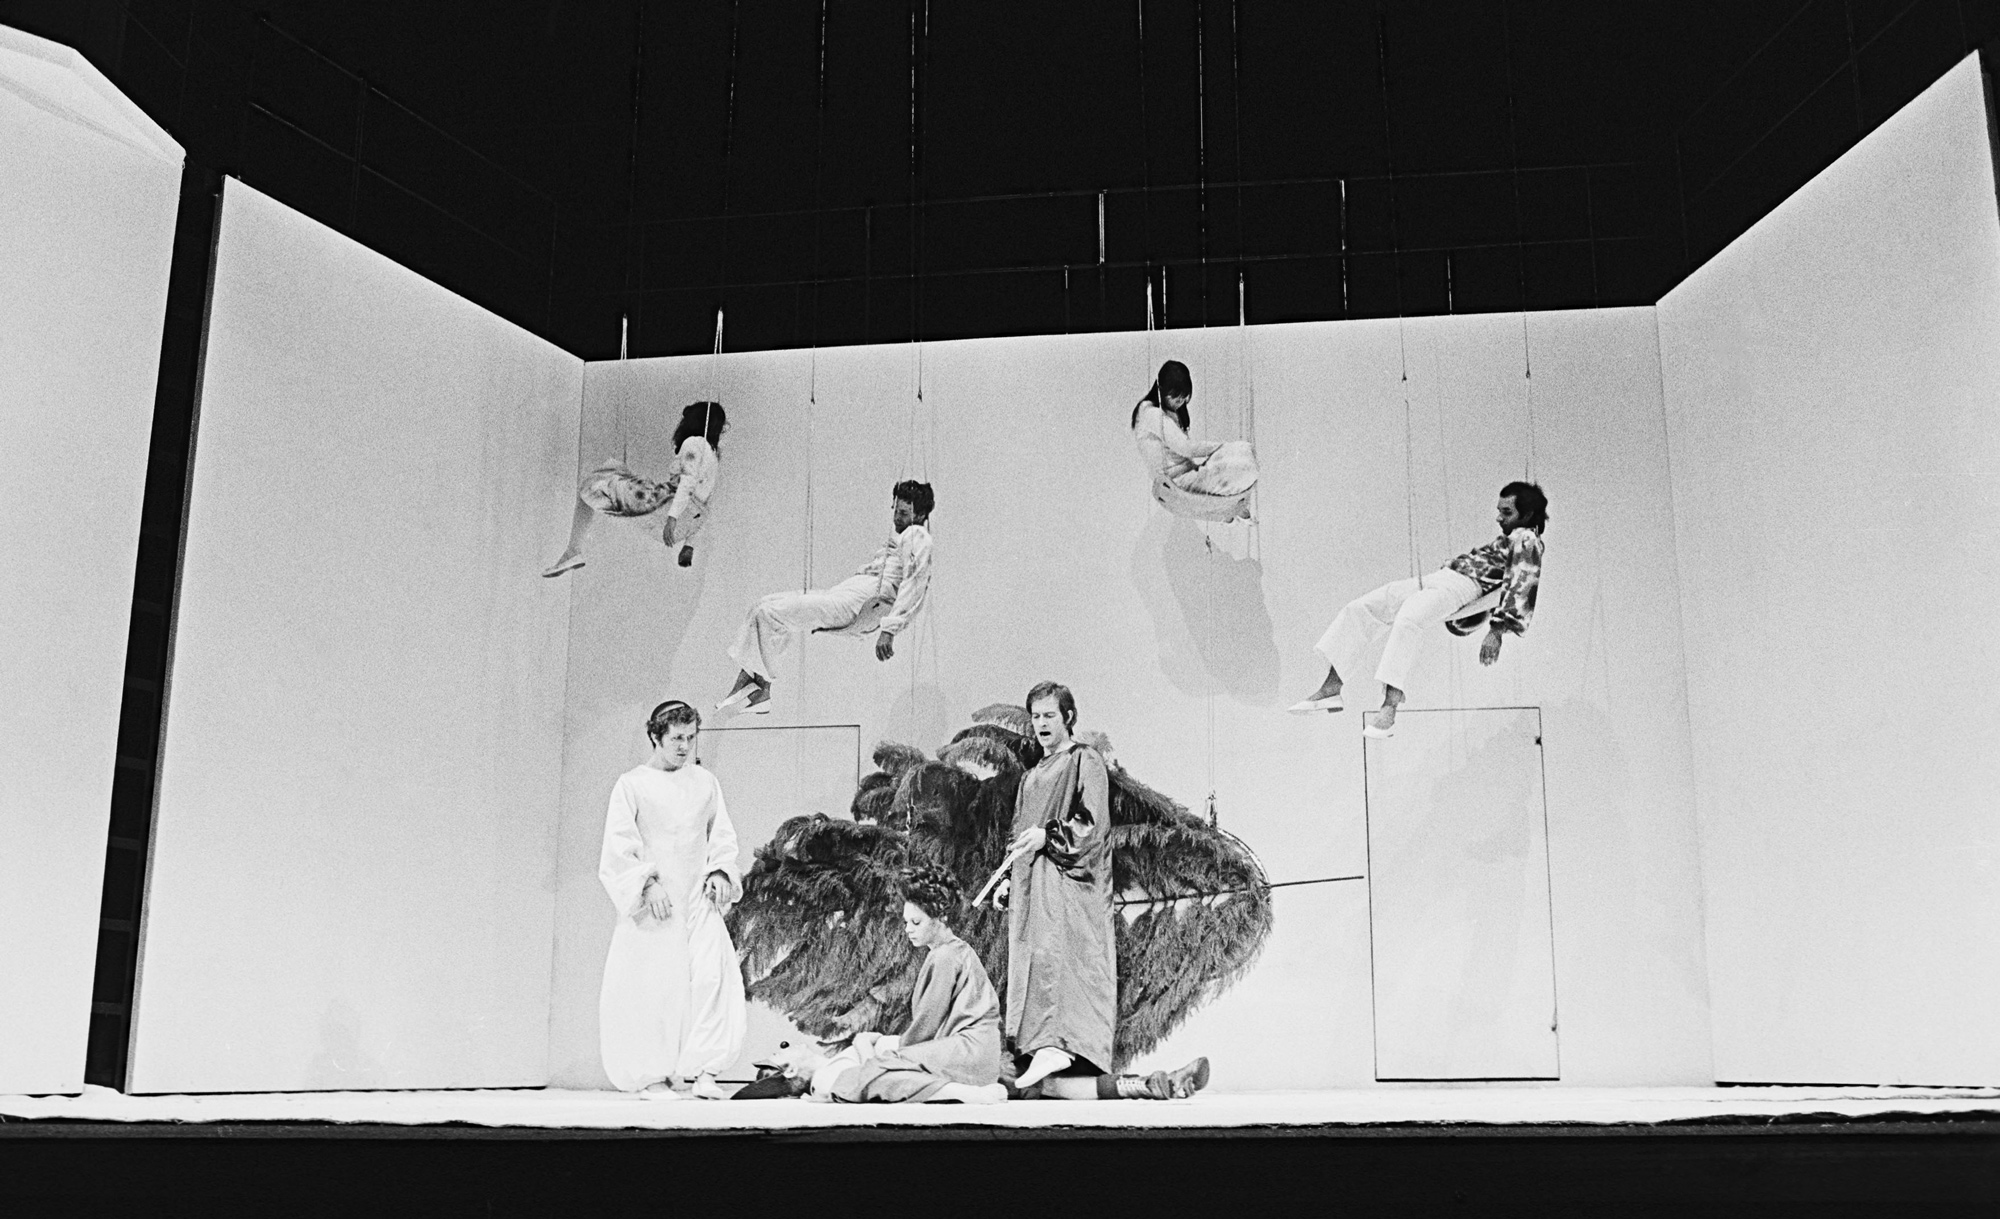 Photograph of A Midsummer Night's Dream directed by Peter Brook, 1970